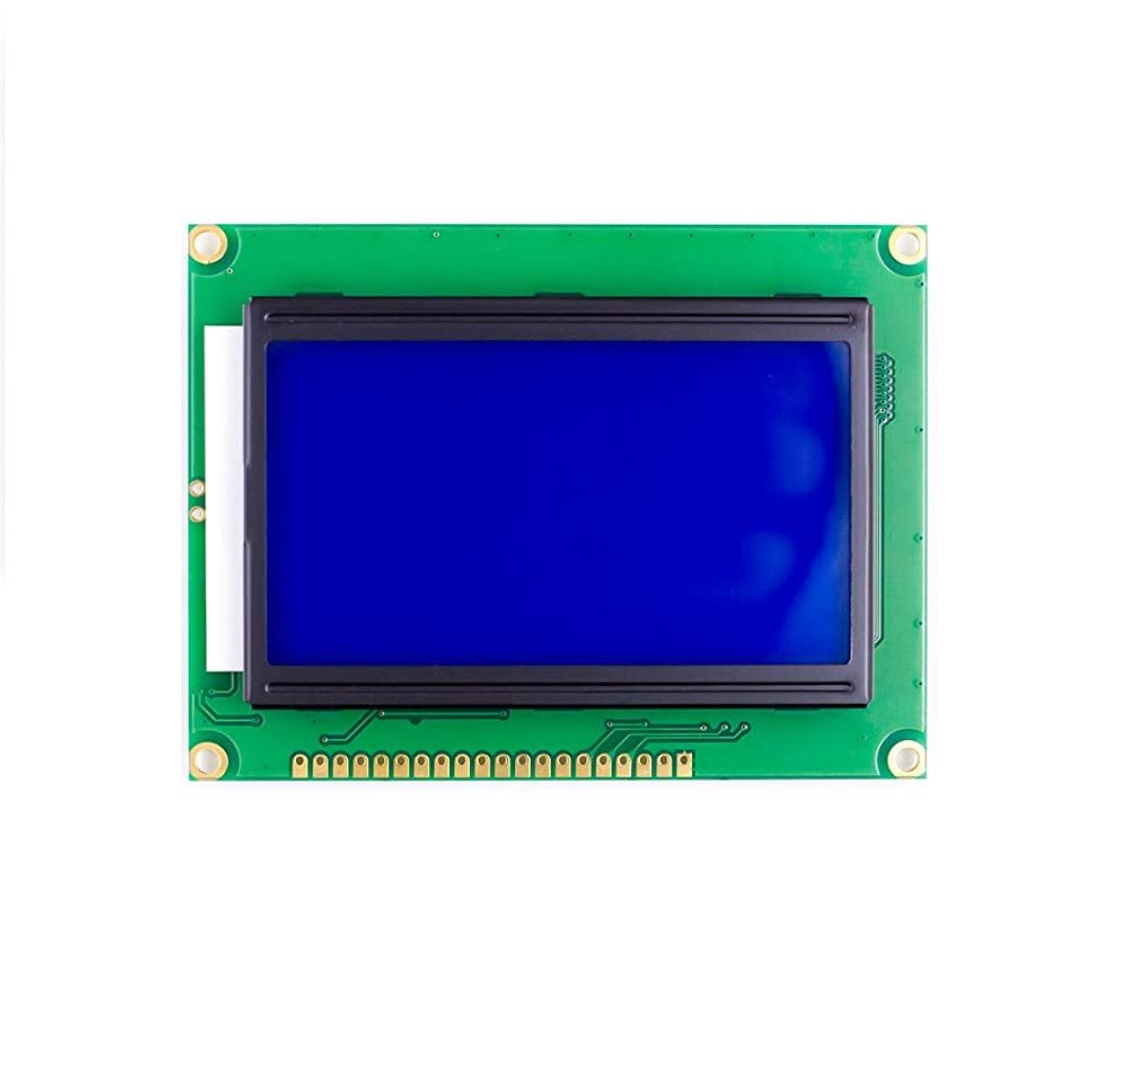 Graphic LCD display 128x64 blue backlight | arduino-shop cz